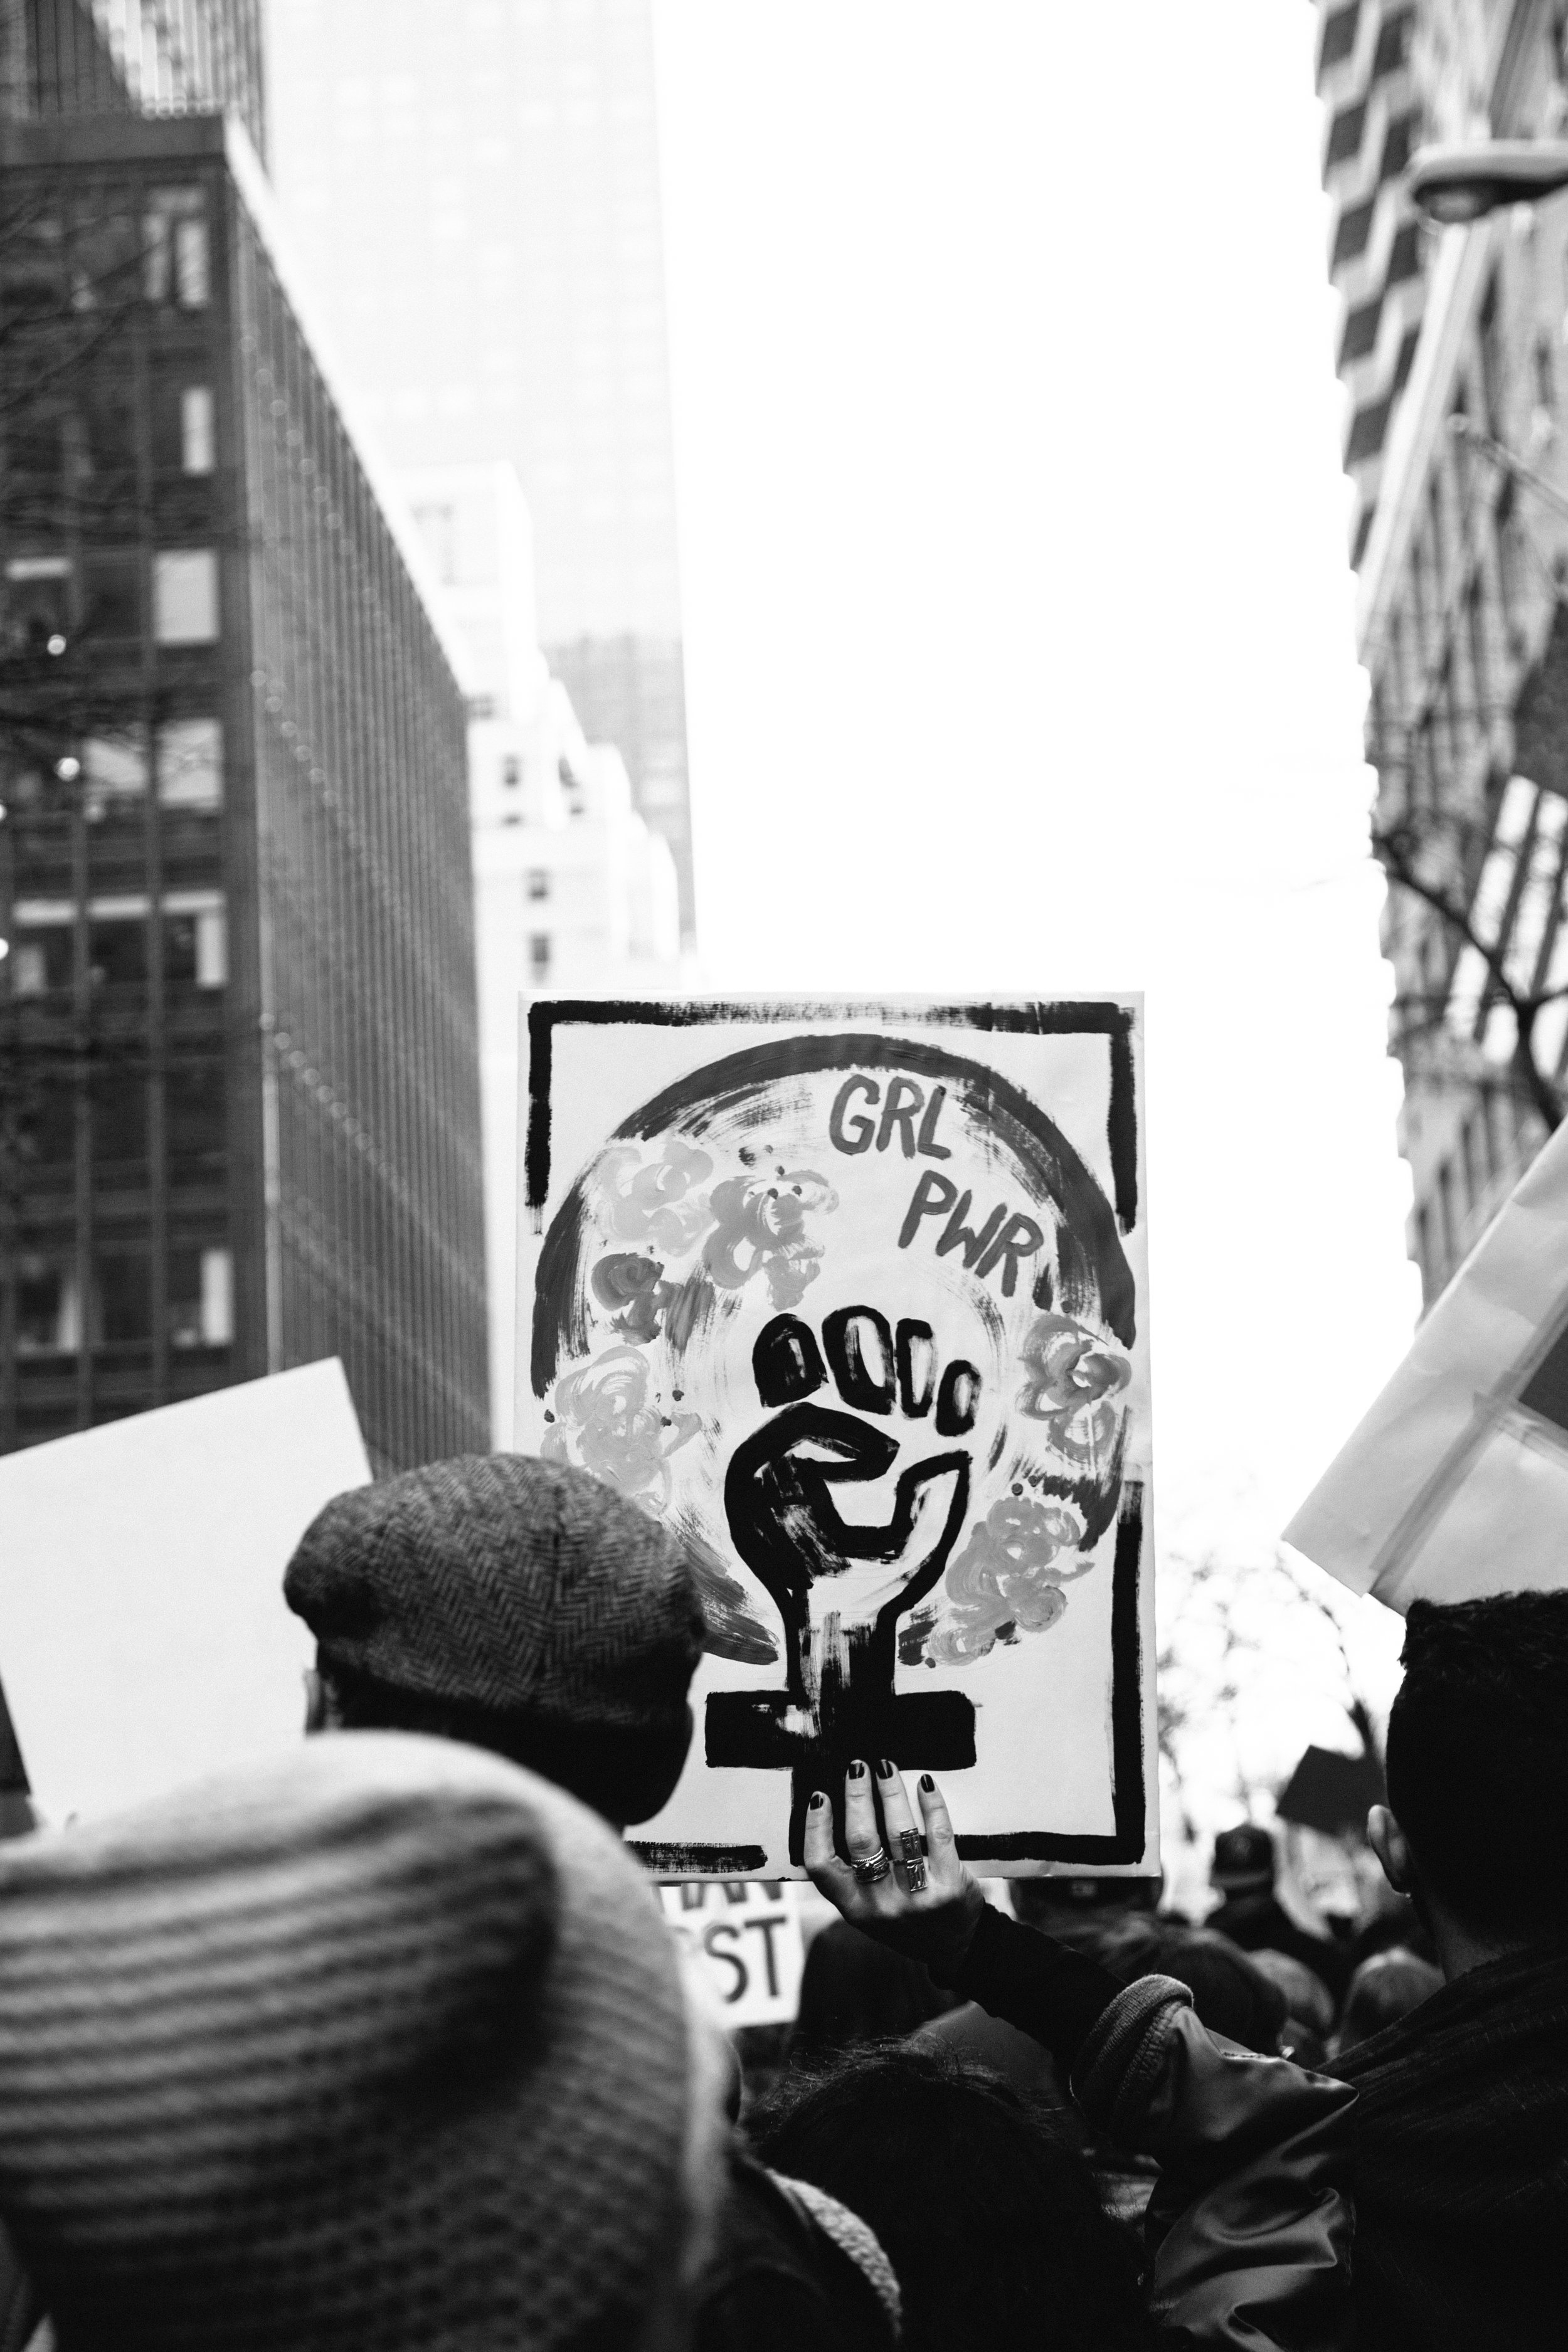 women's march on washington nyc protest signs-11.jpg